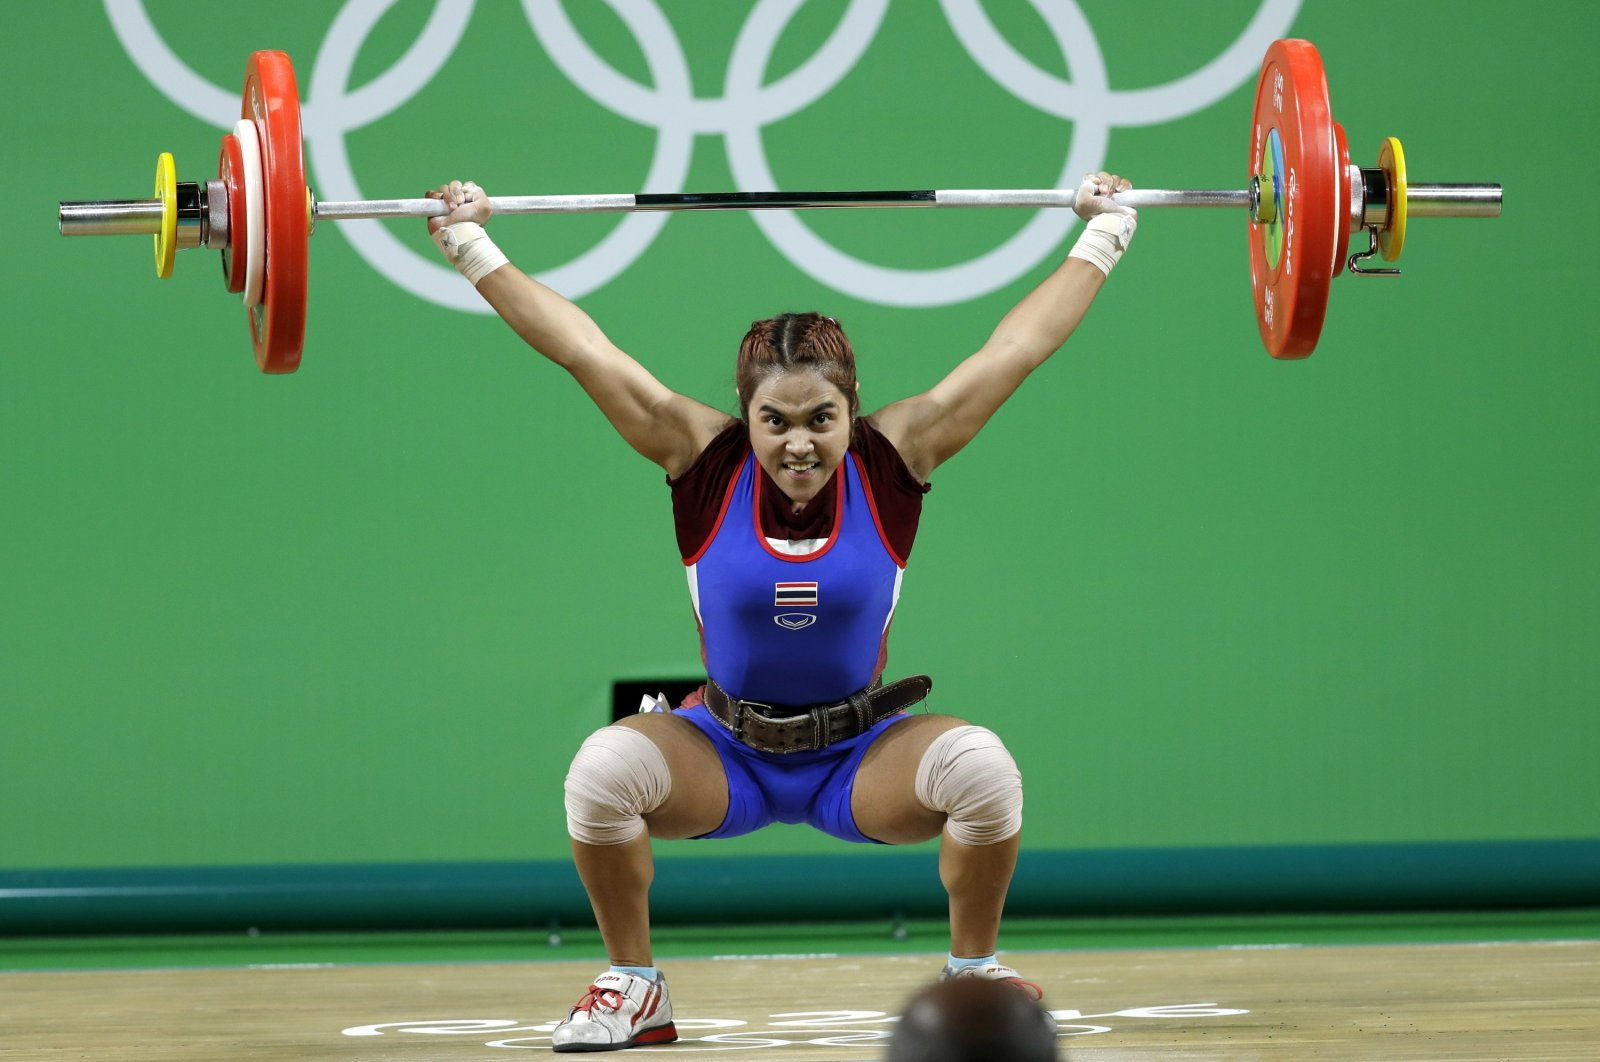 Sopita Tanasan of Thailand competes in the women's 48kg weightlifting competition at the 2016 Summer Olympics in Rio de Janeiro, Brazil, Aug. 6, 2016. (AP Photo)